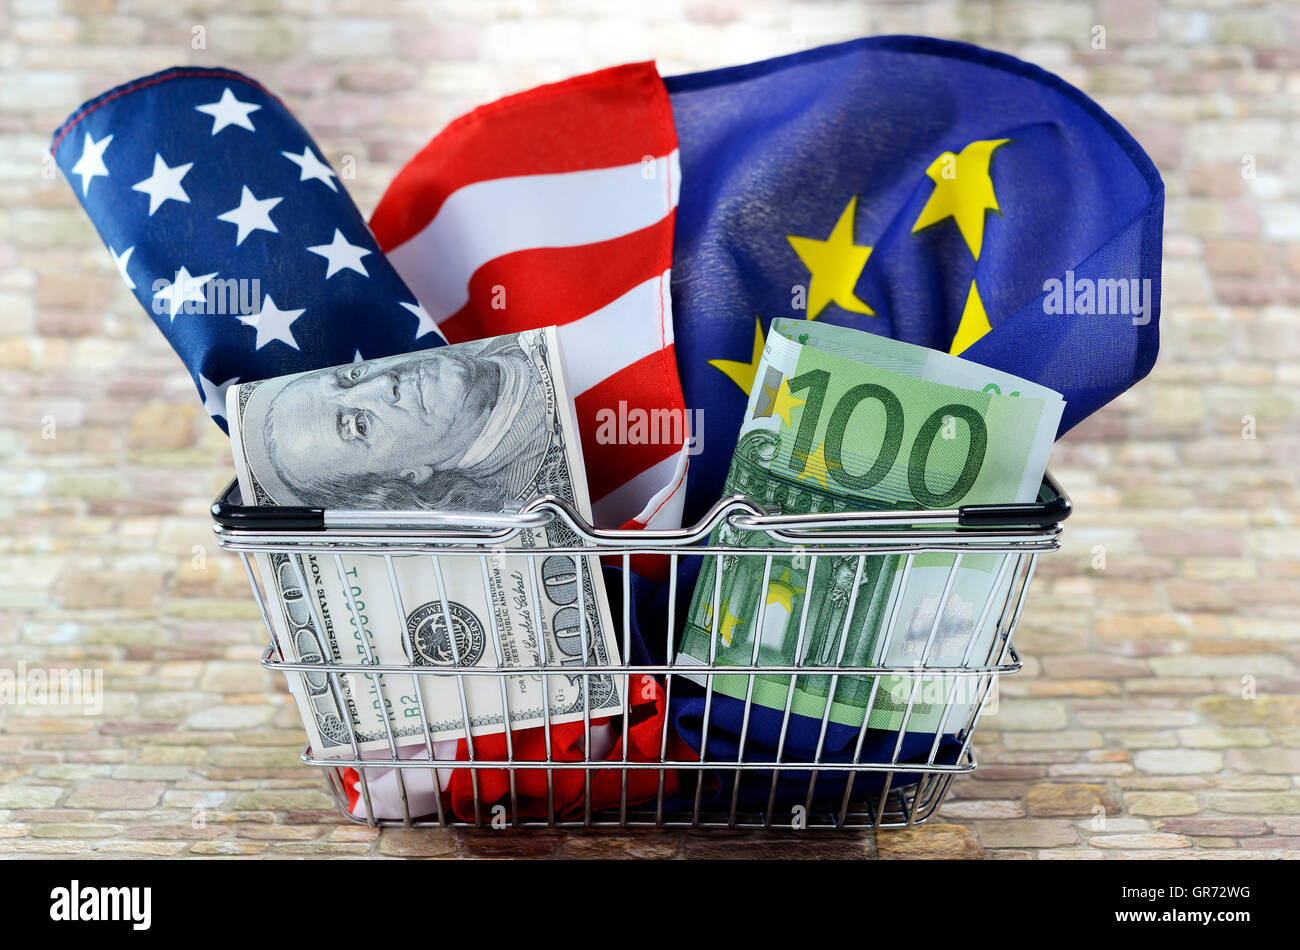 Flags Of The Usa And European Union In A Shopping Basket, Ttip - Stock Image